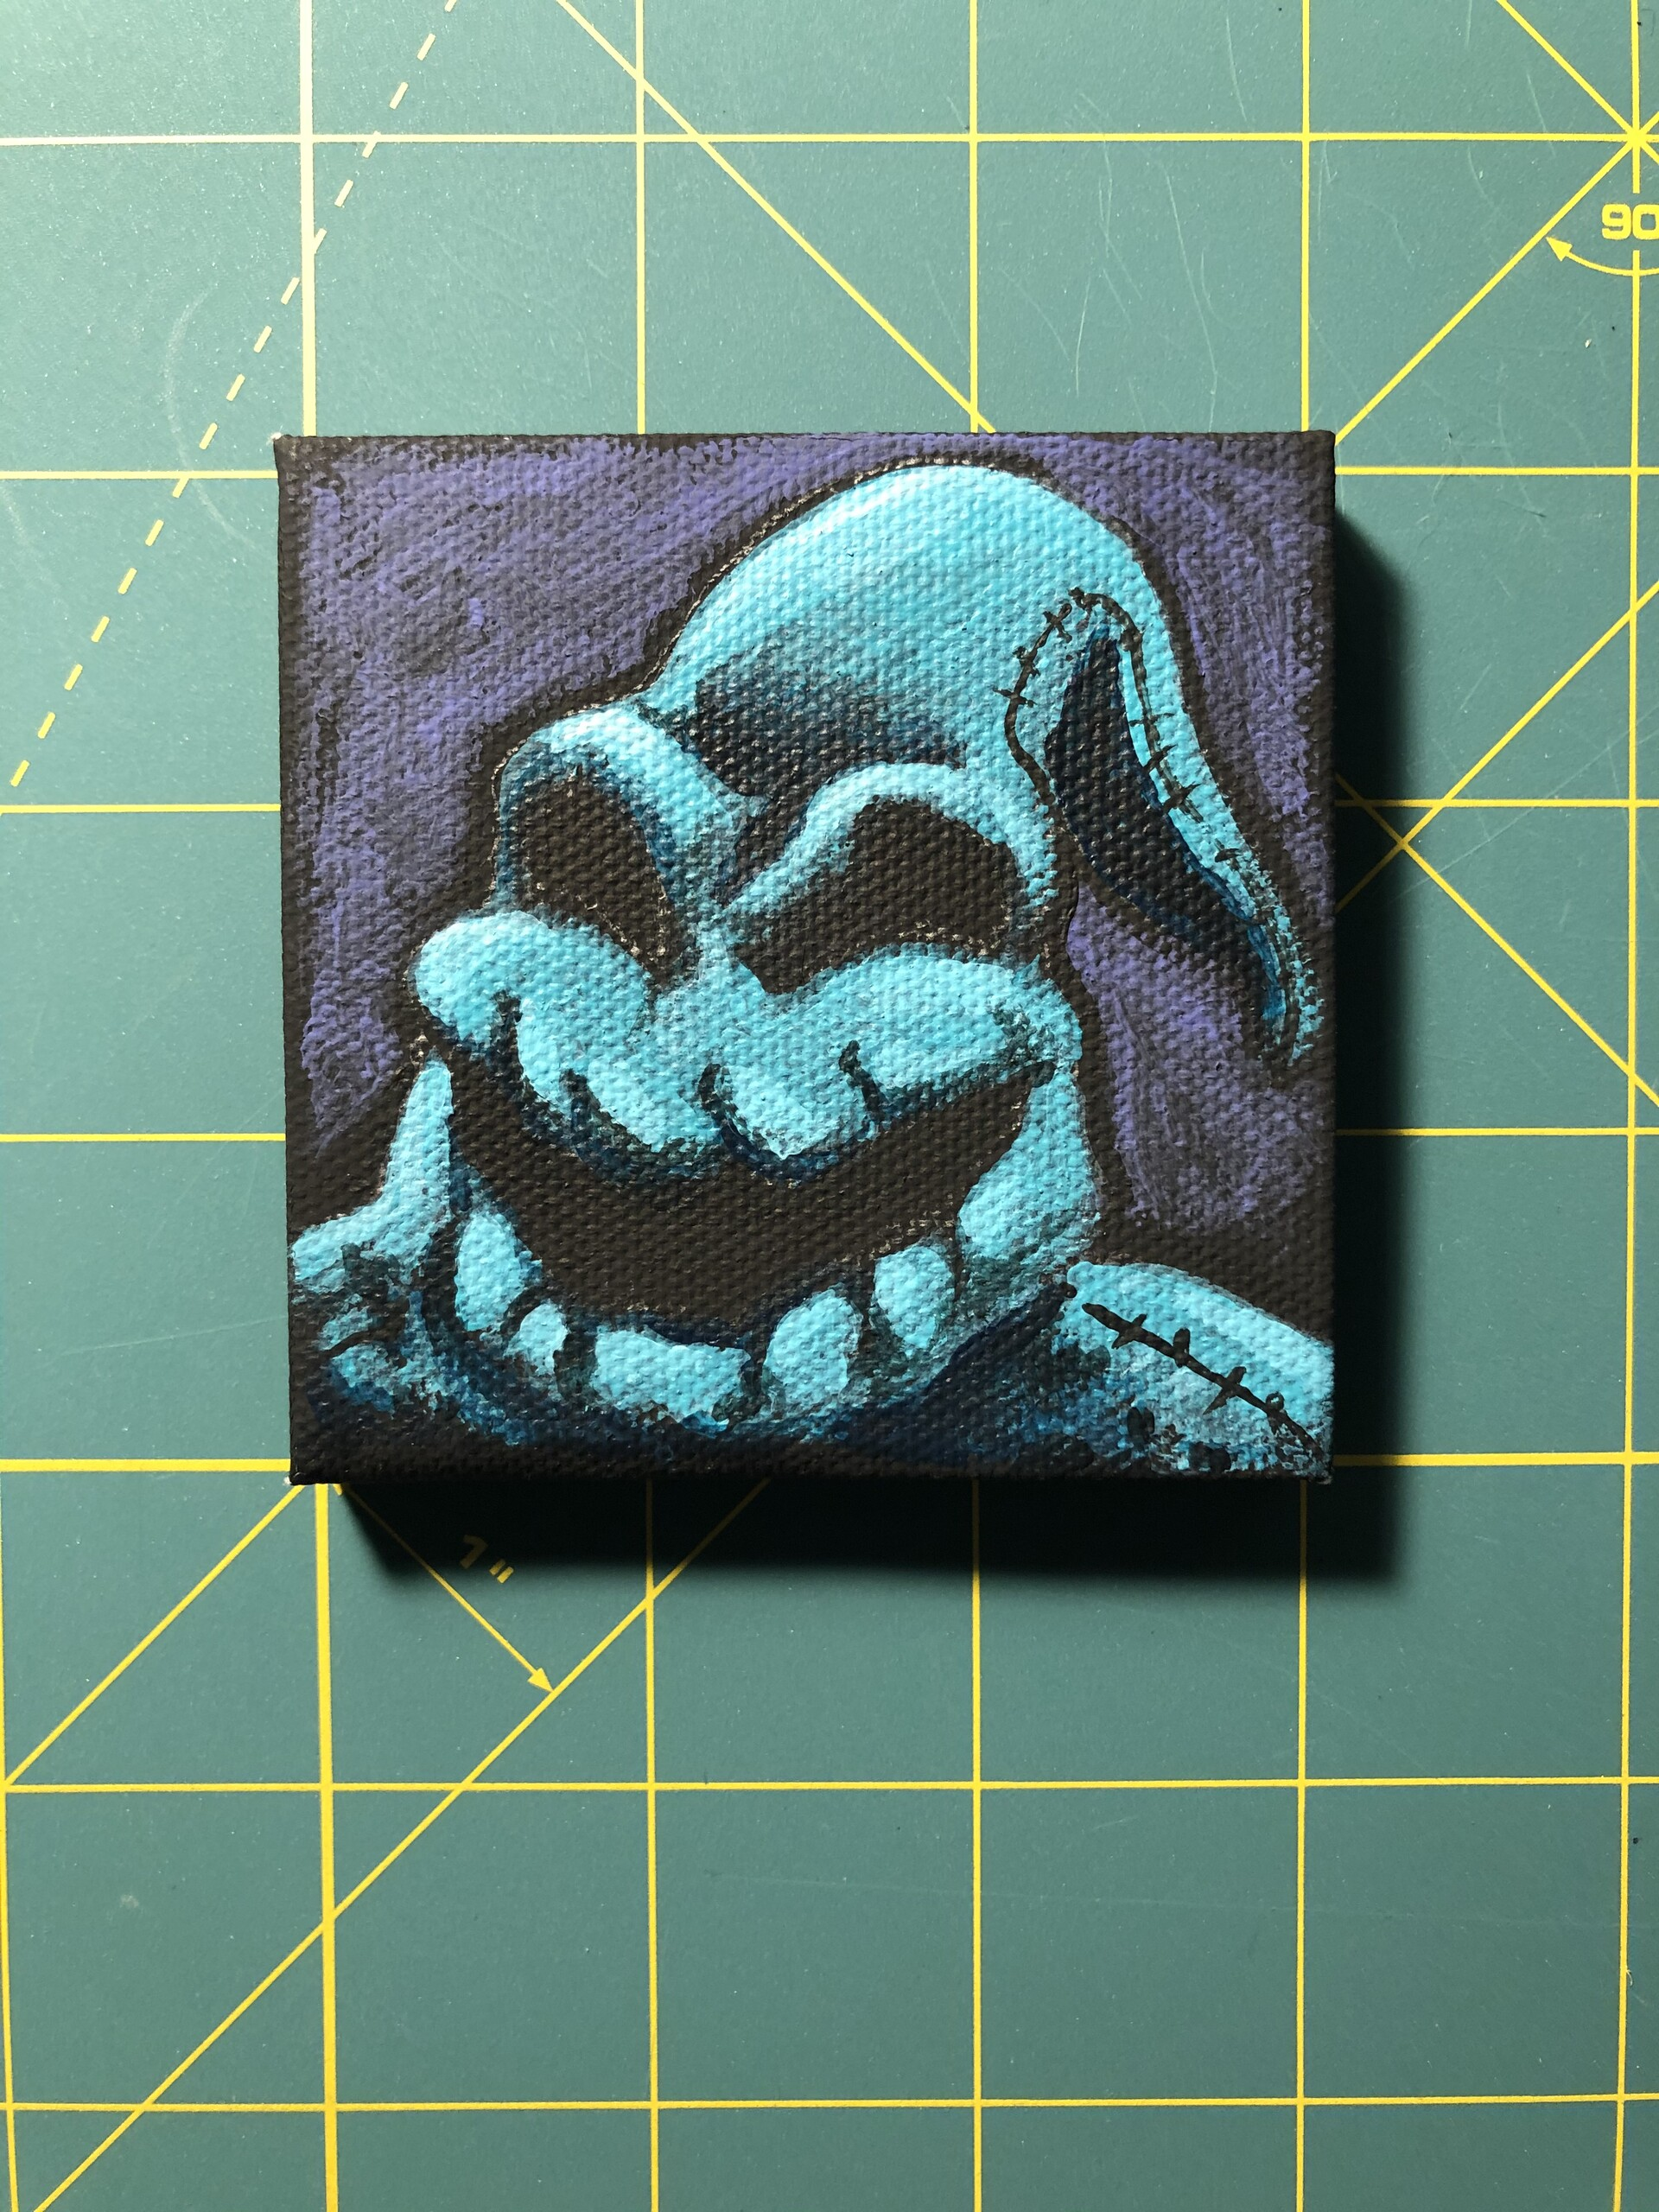 Nightmare Before Christmas, Oogie Boogie. Acrylic paintings on black mini canvas, 3x3 in.